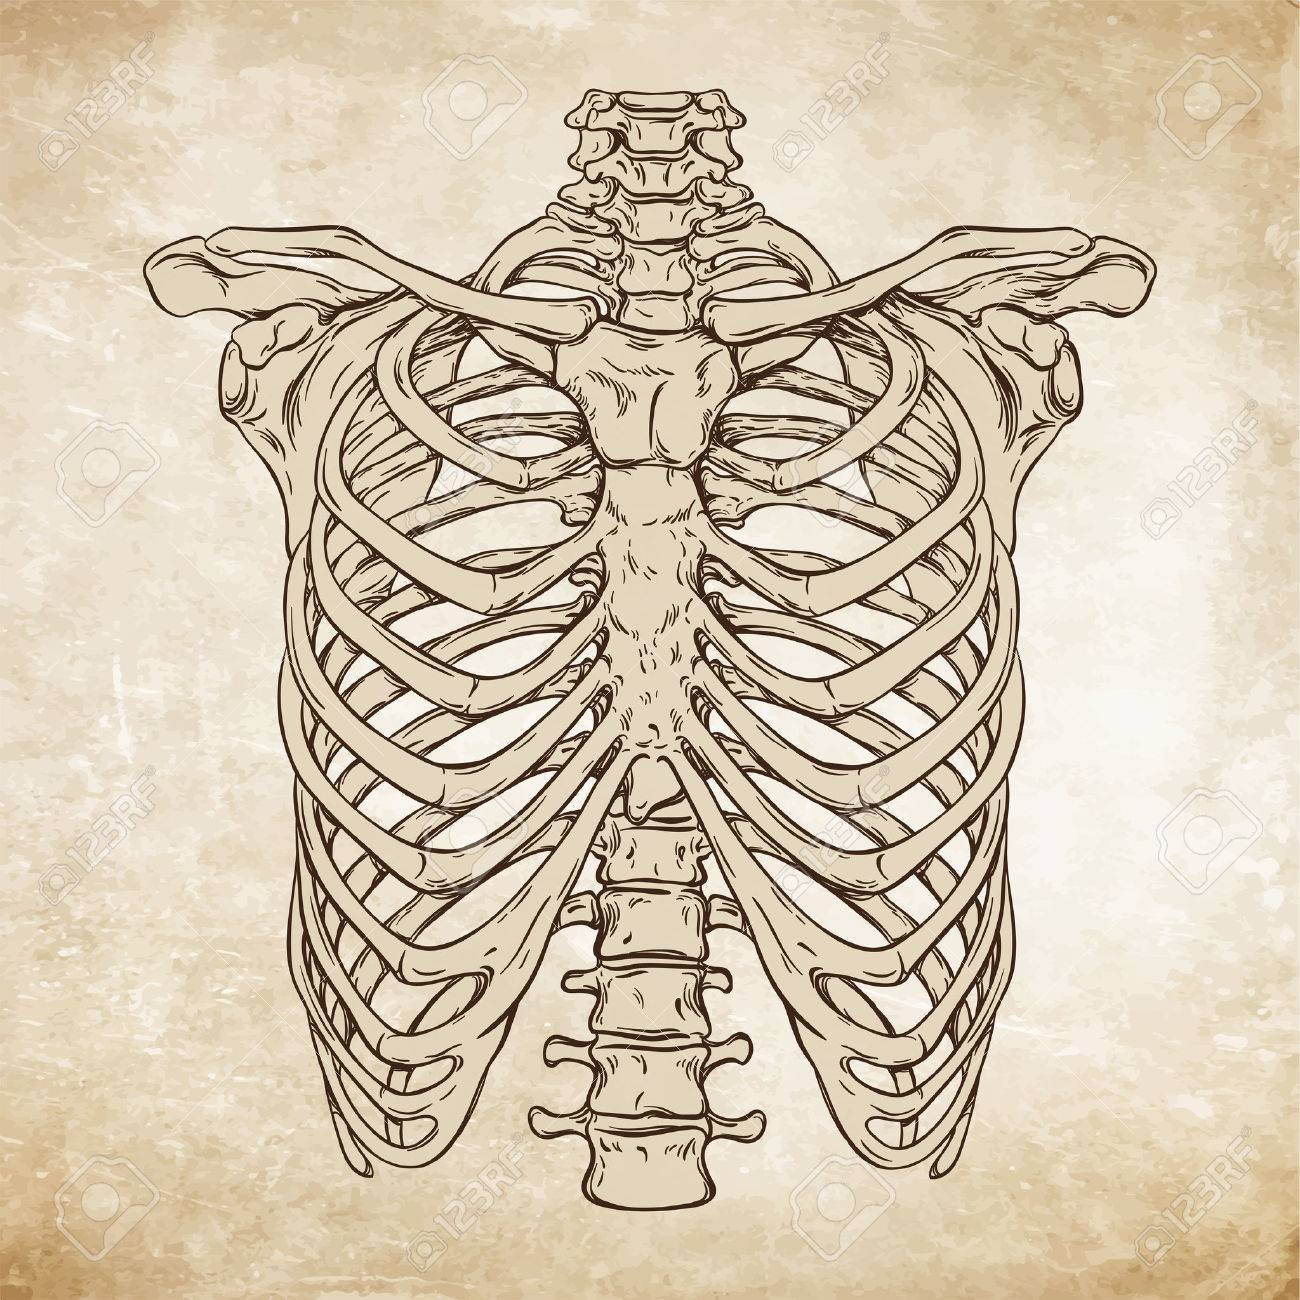 Hand drawn line art anatomically correct human ribcage. Da Vinci sketches style over grunge aged paper background vector illustration - 61784313